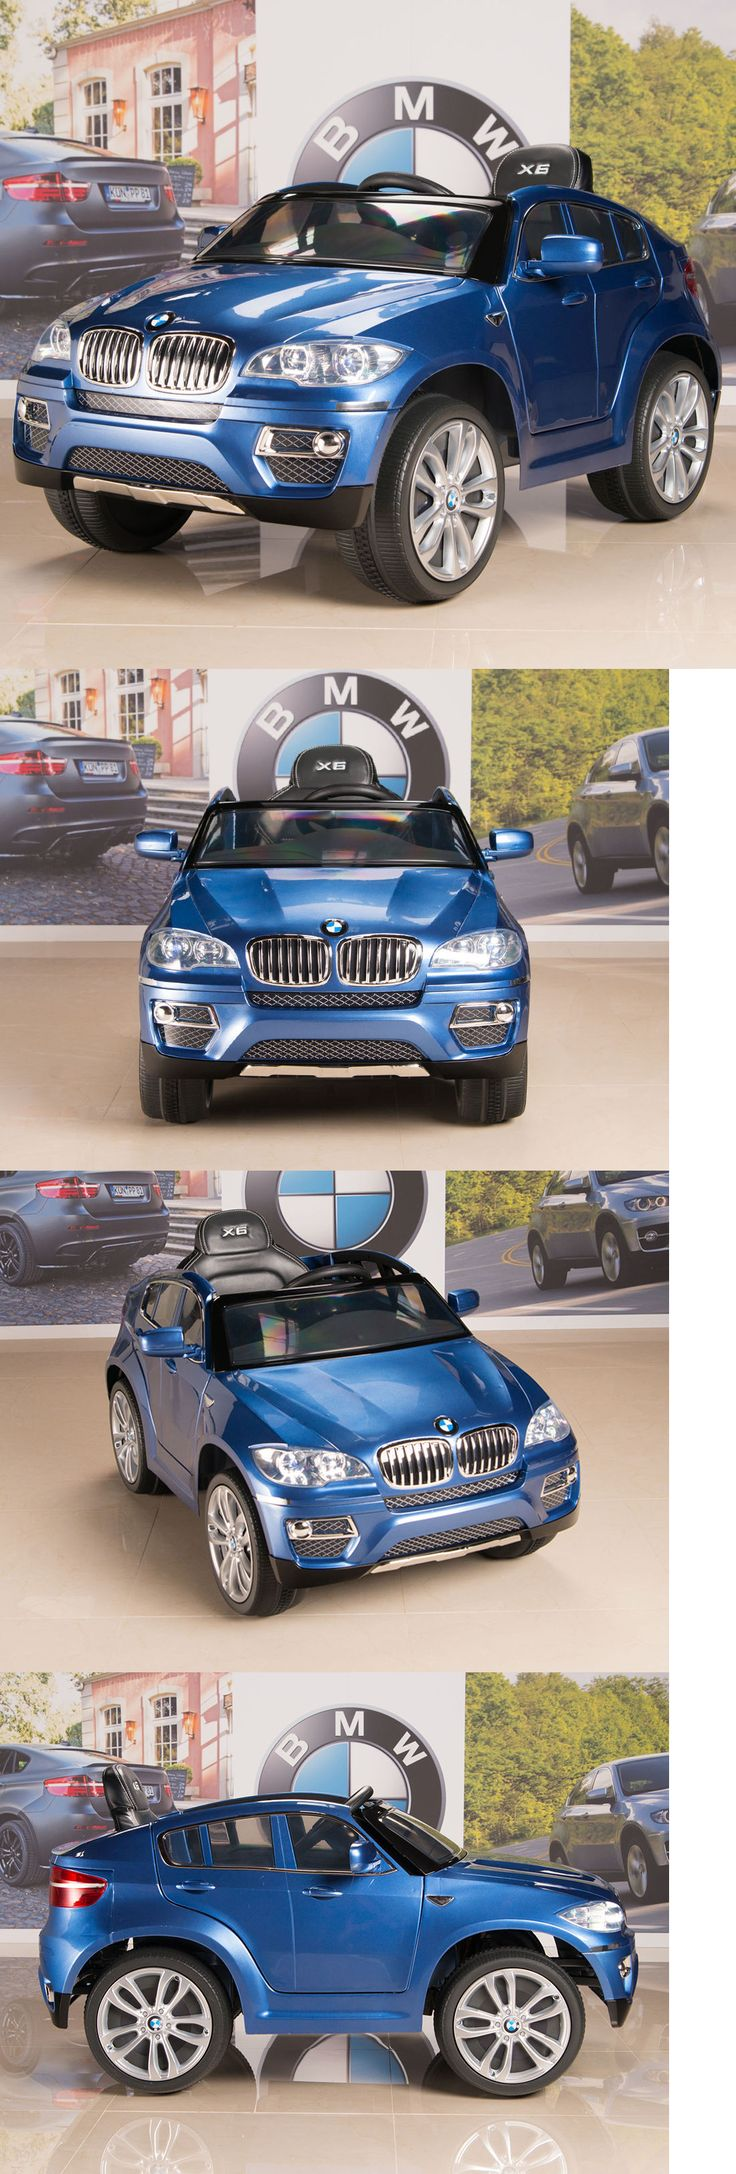 Ride on toys and accessories 145944 bmw x6 12v kids ride on car electric power